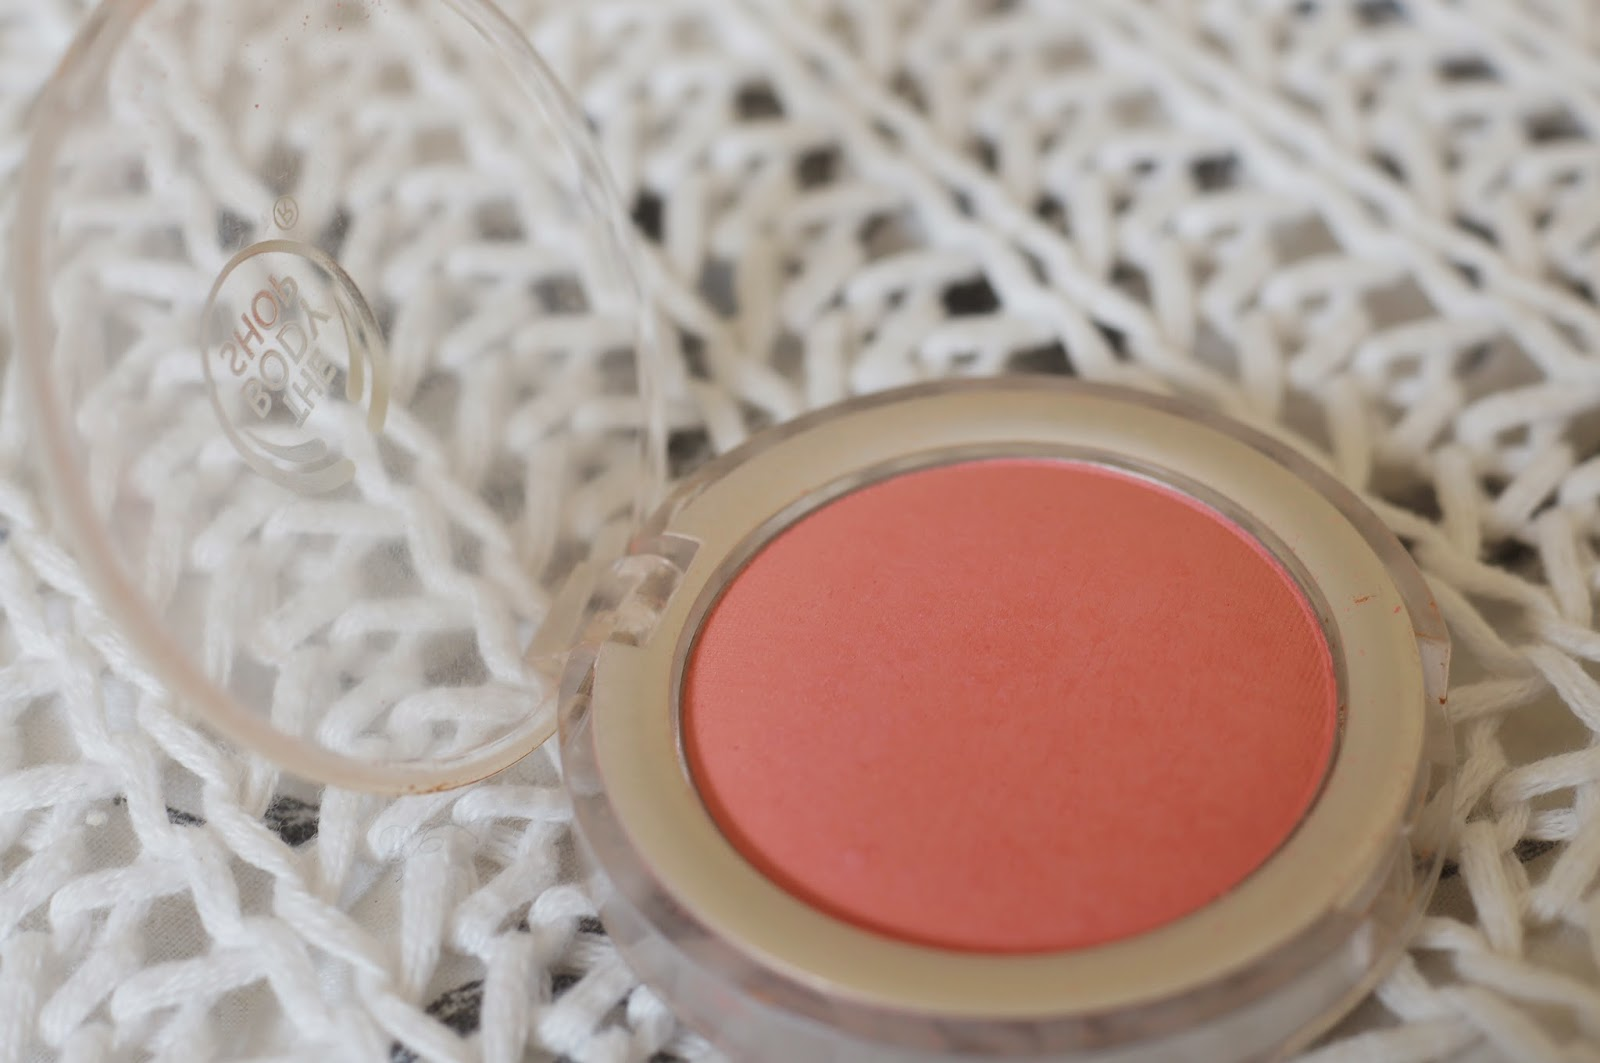 The Body Shop All In One Cheek Colour shade Macaroon